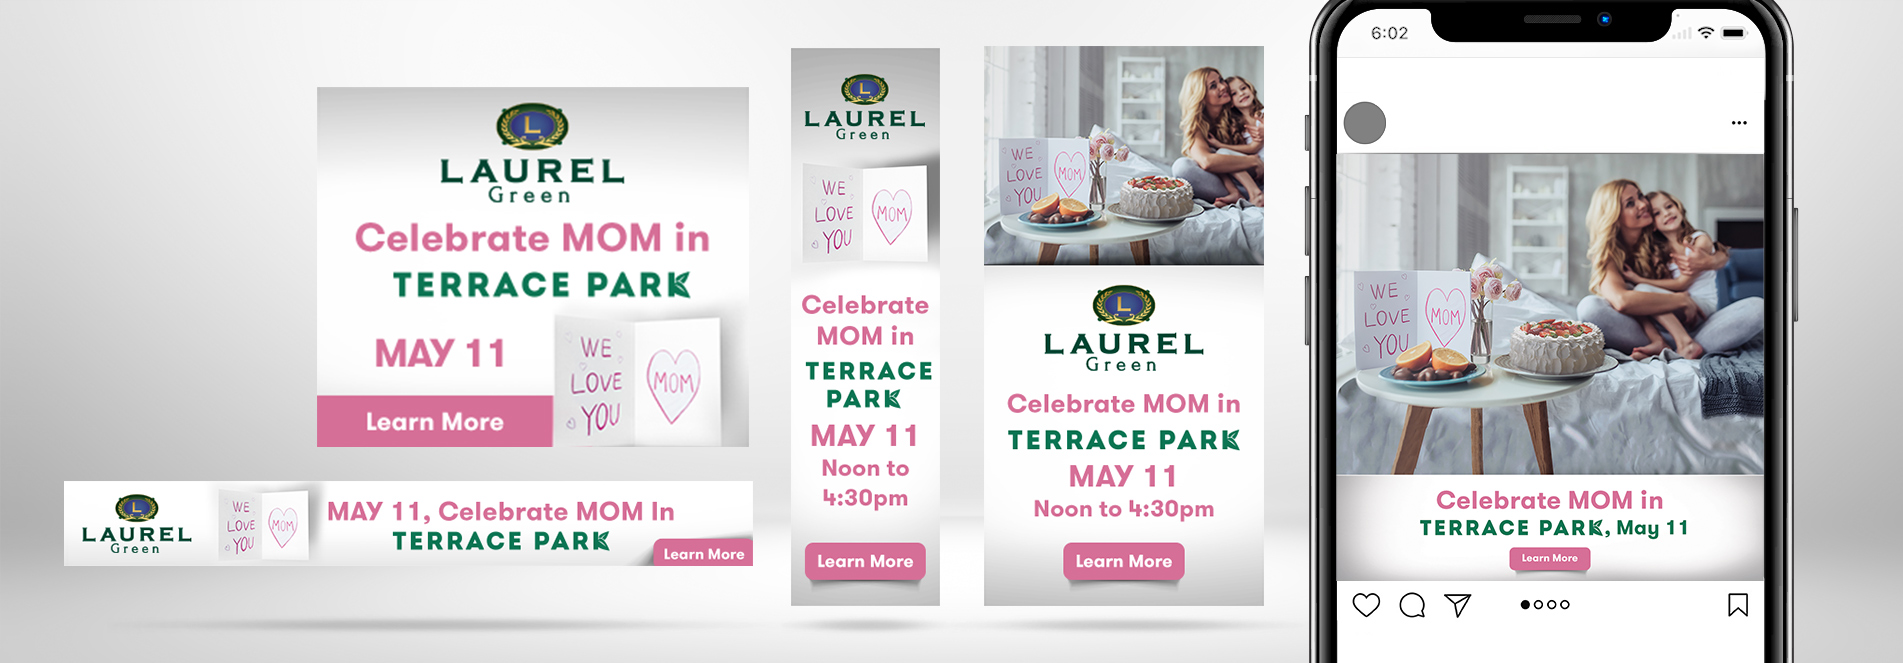 Online Campaigns | Laurel Green